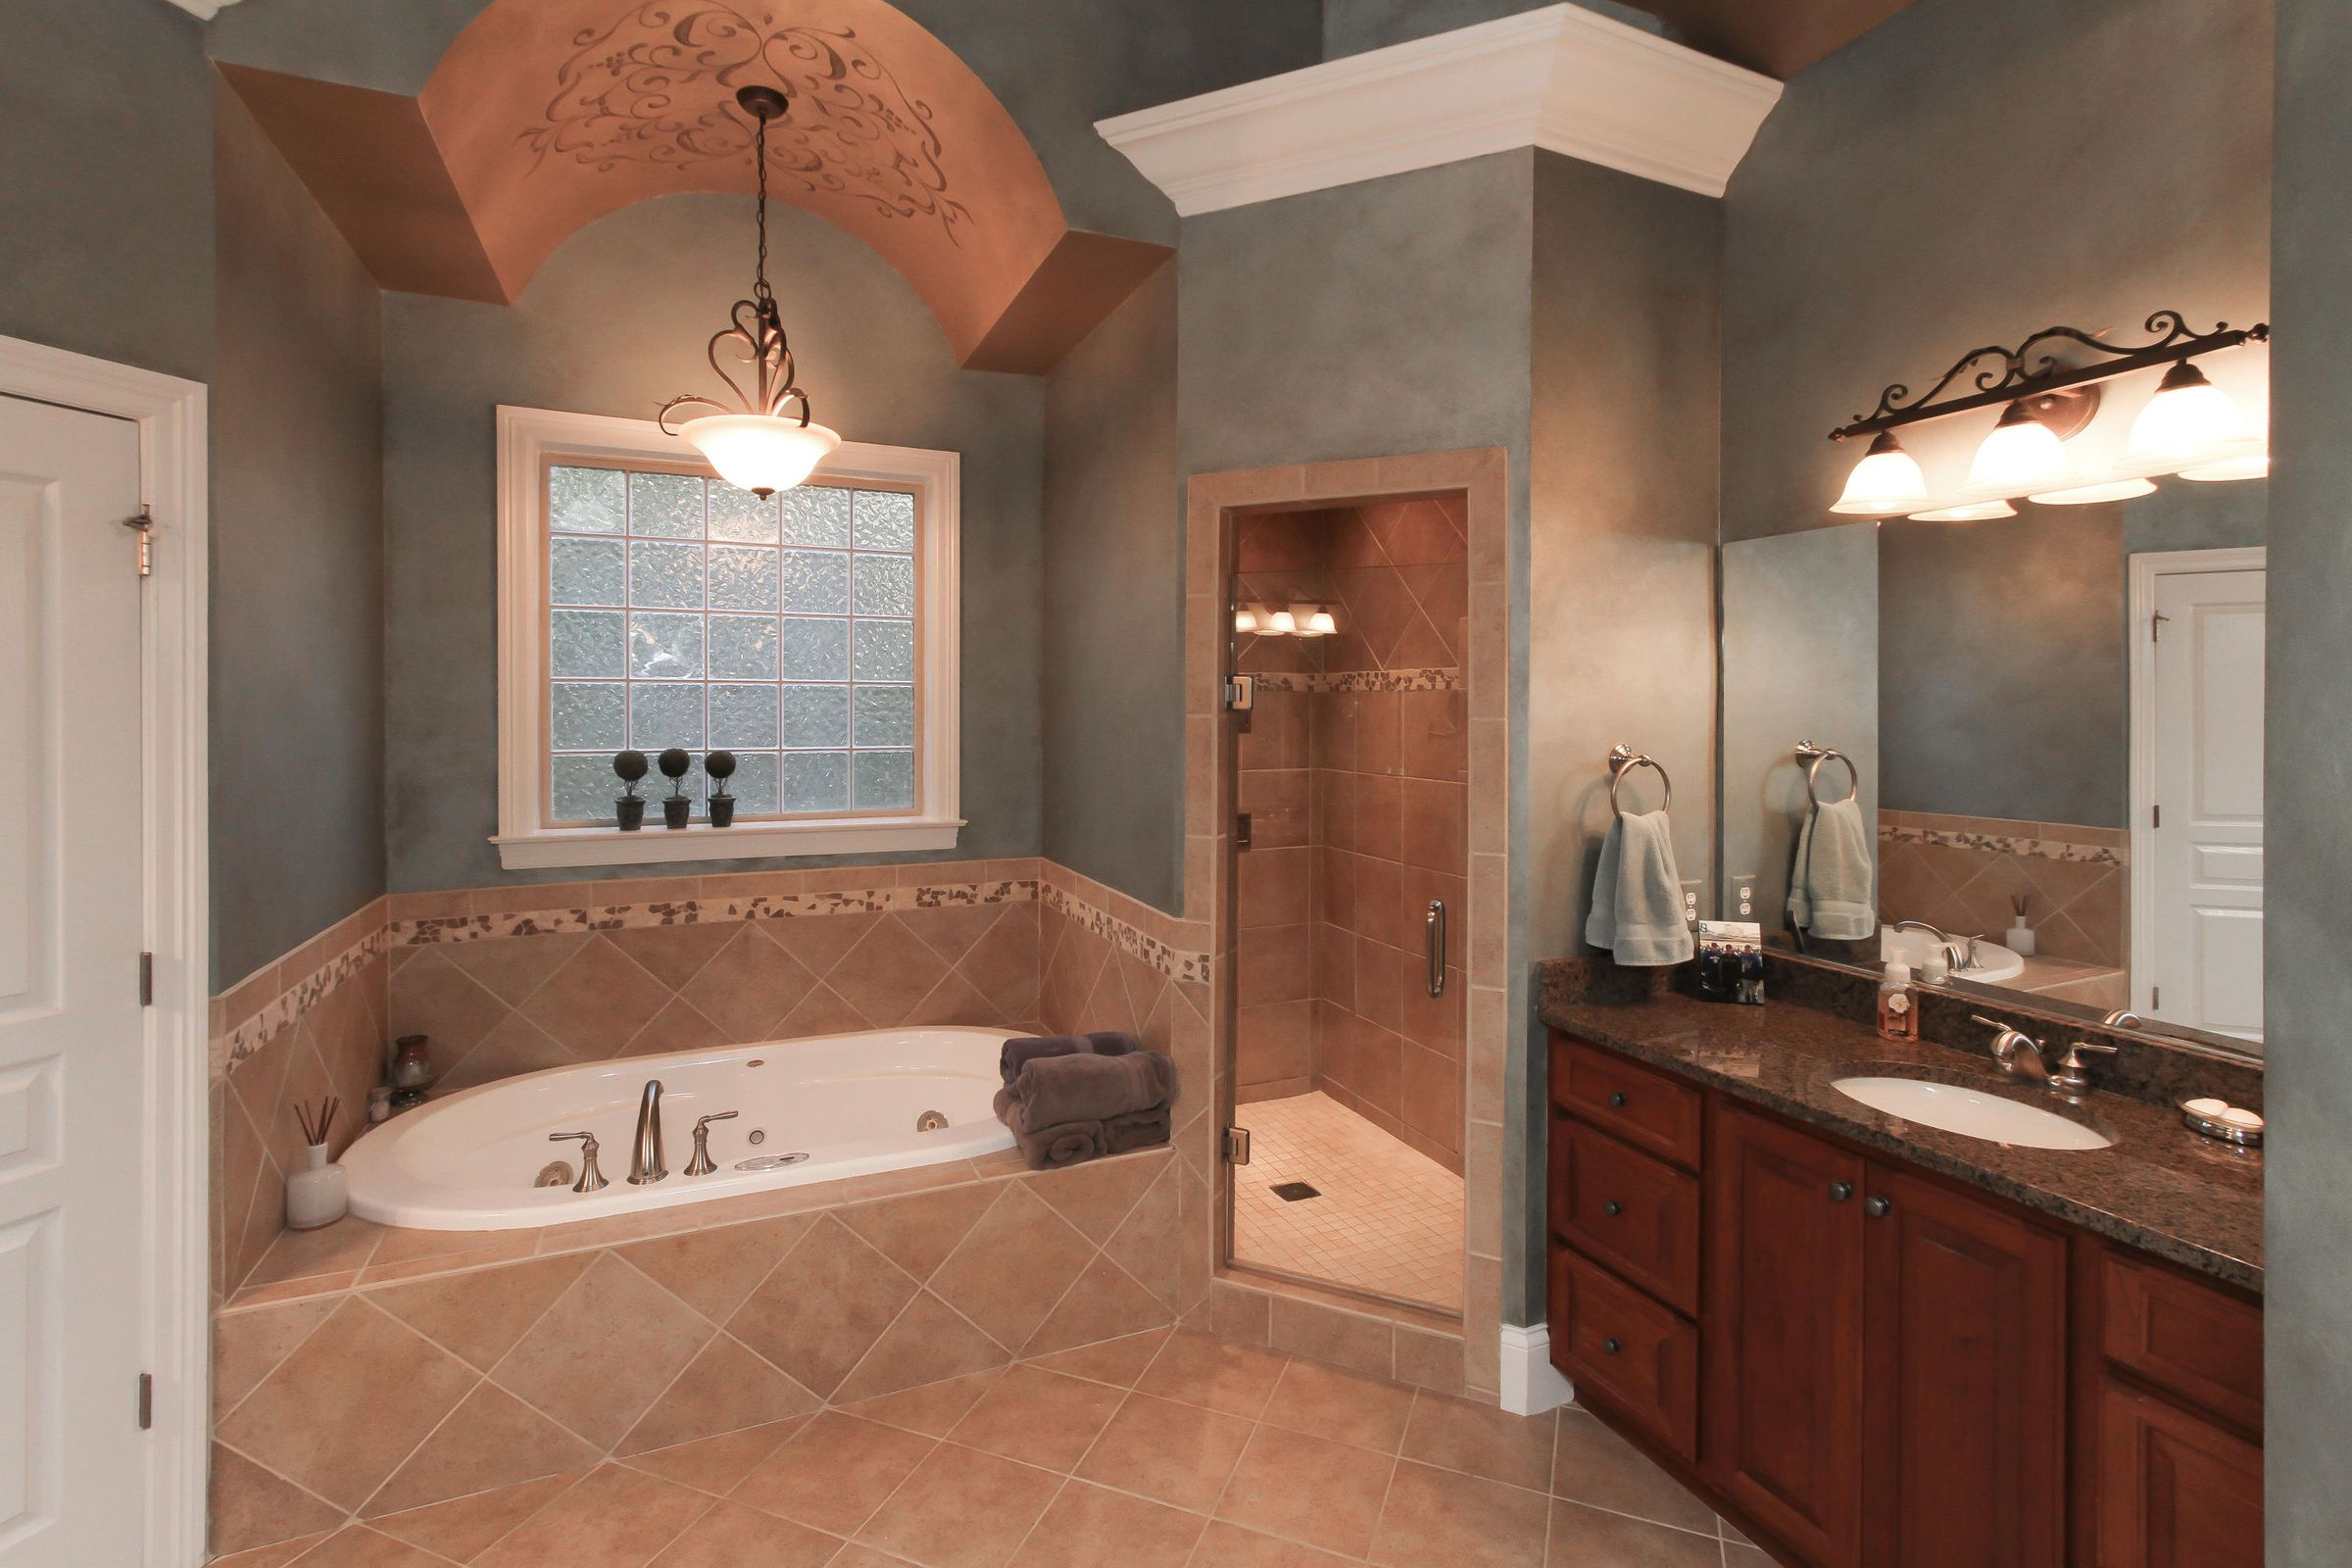 16 - Master Bath with Walk-in Shower & J